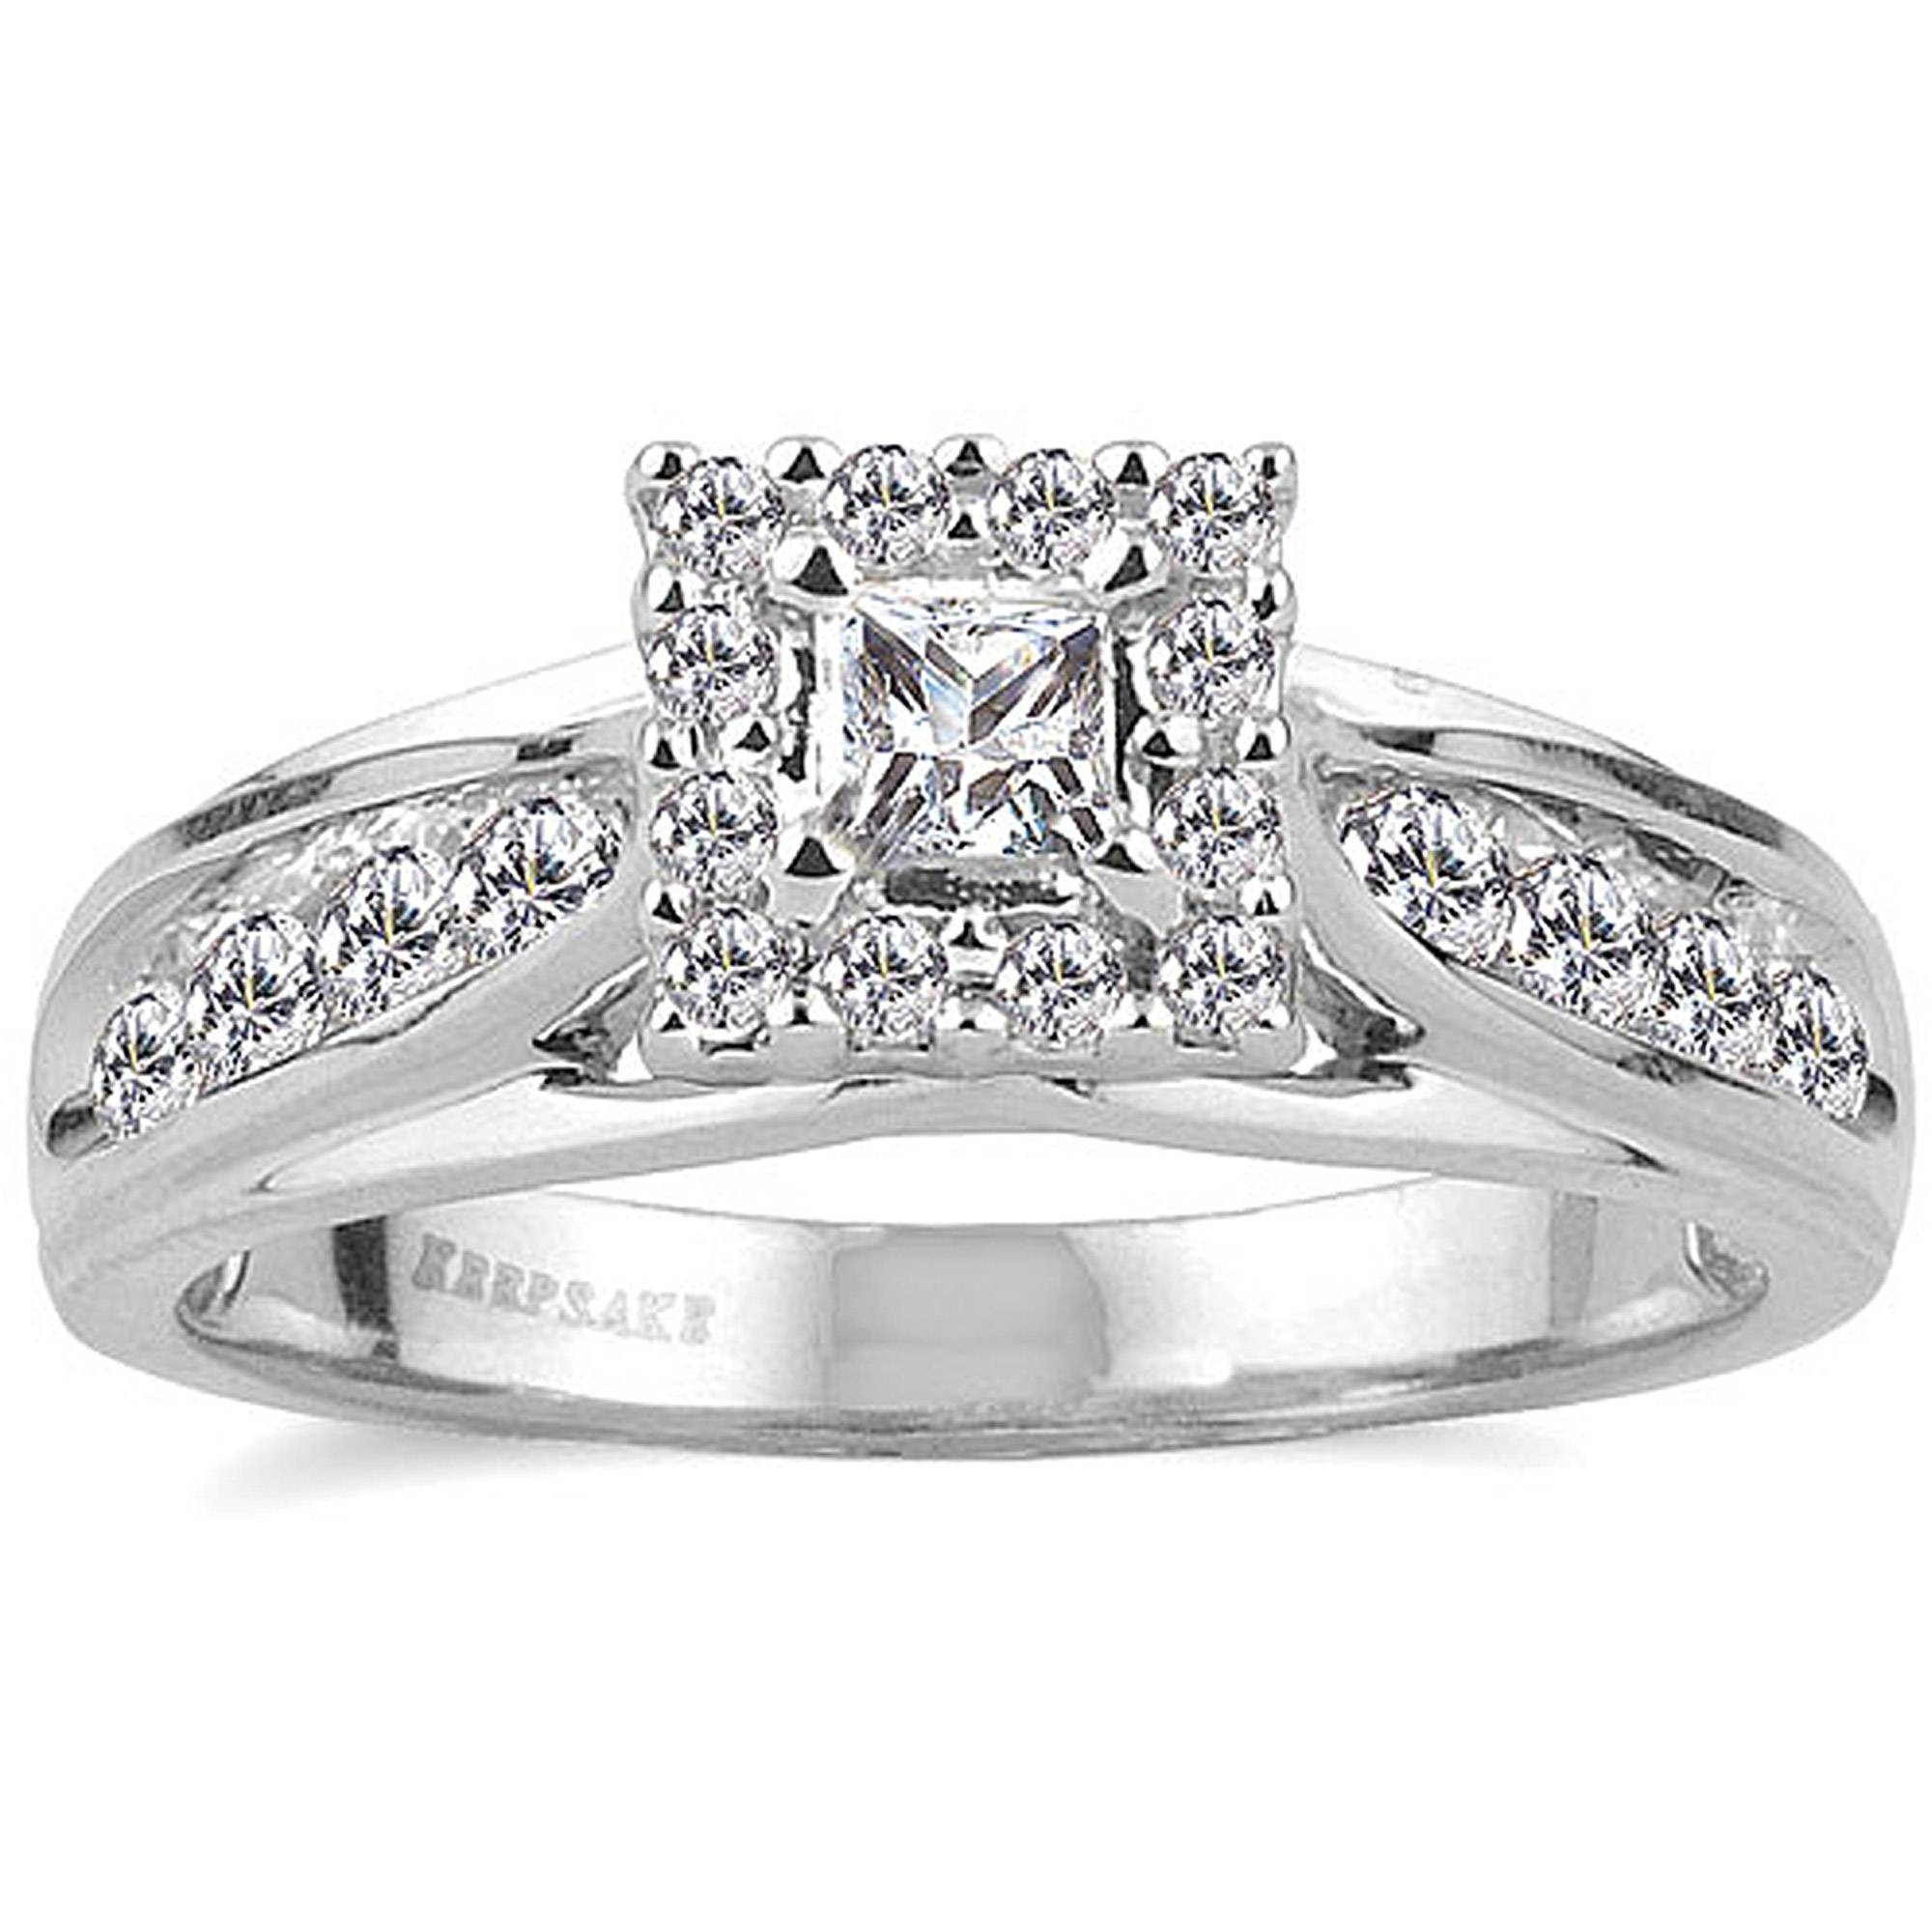 Featured Photo of Walmart Keepsake Engagement Rings